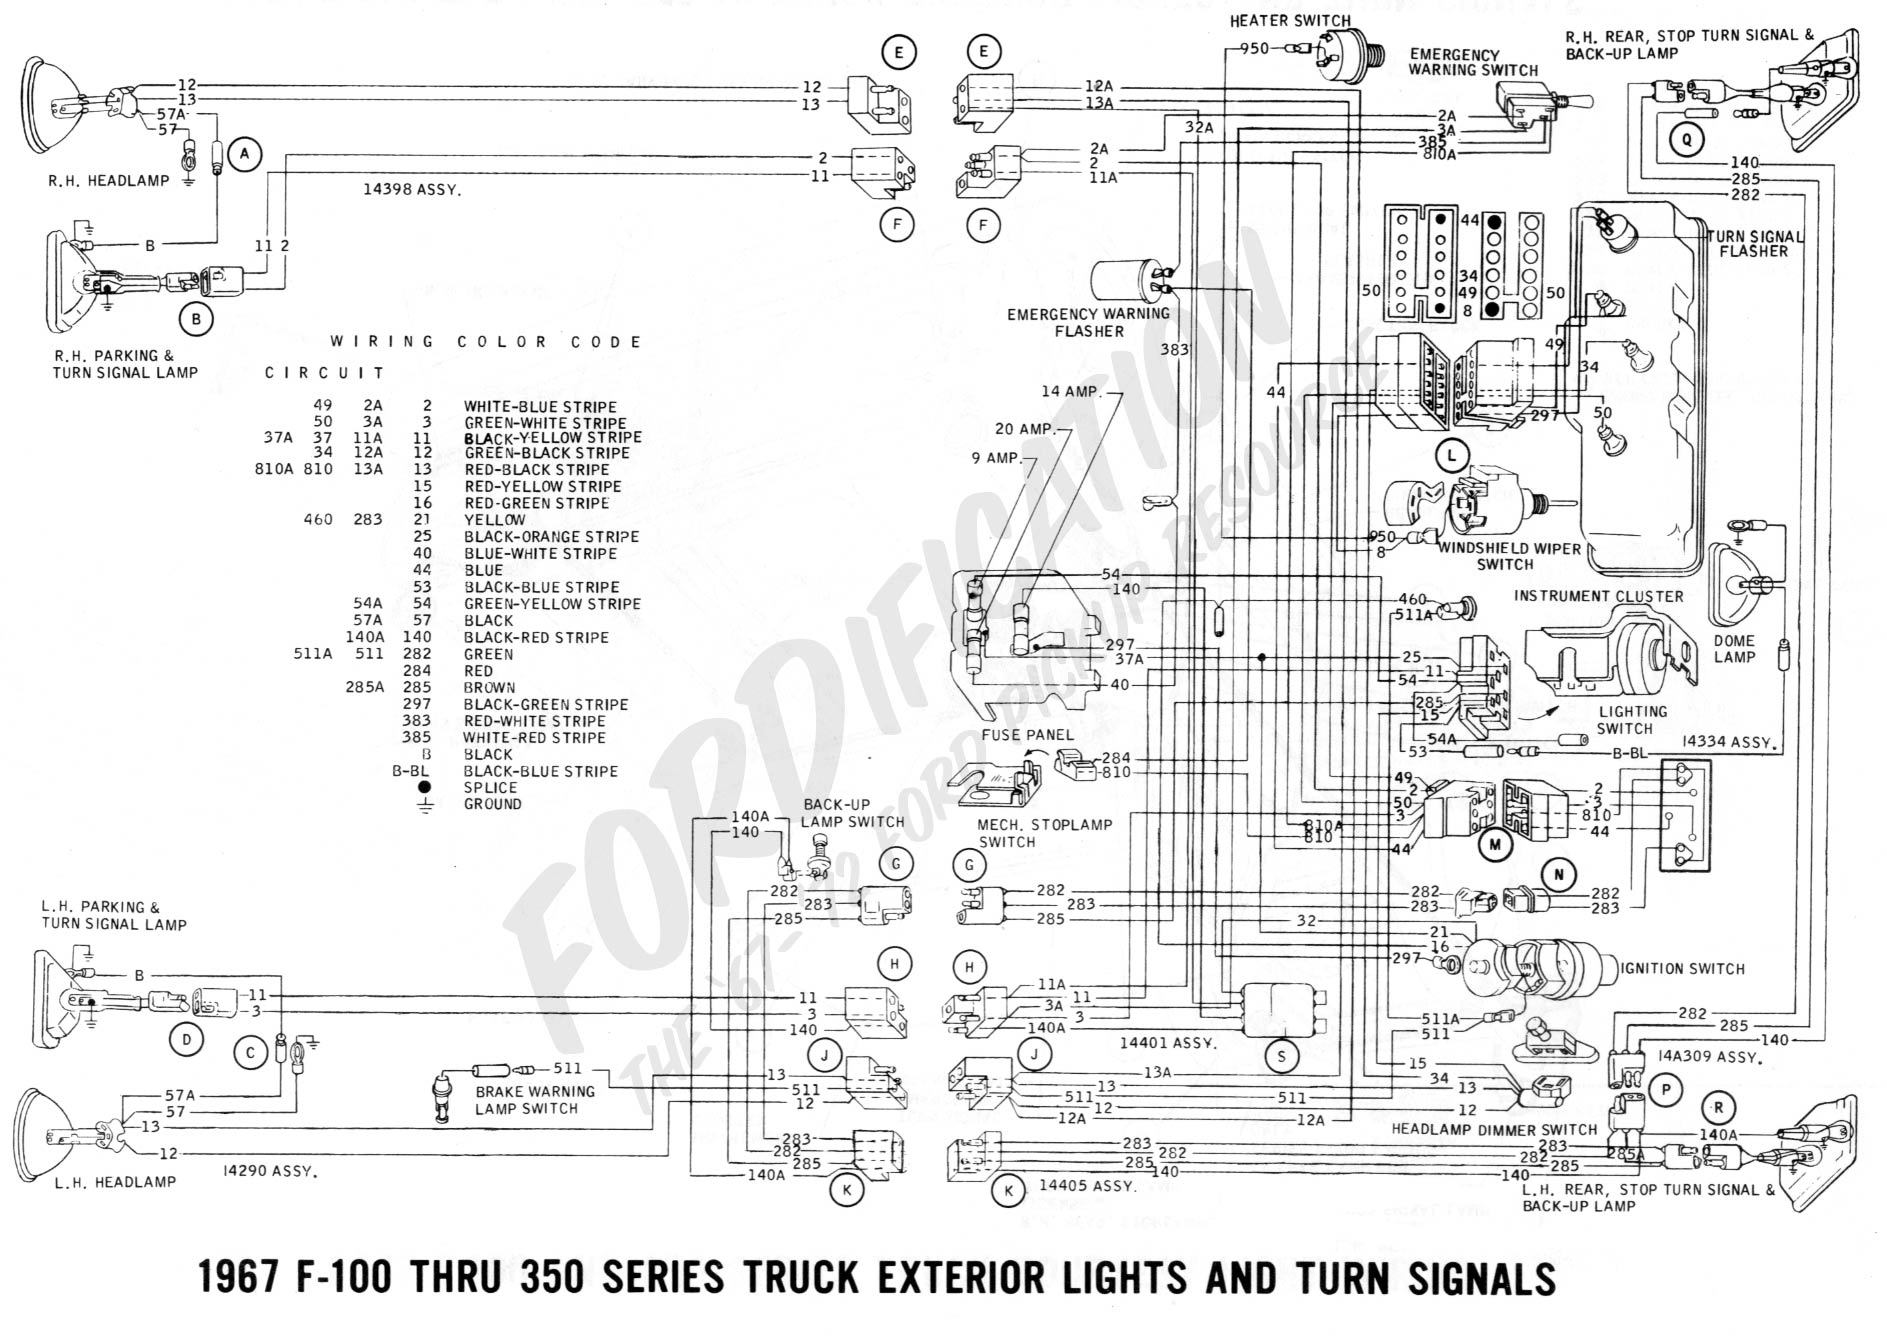 80 1967_exterior_lights_and_turn_signals_page_2_1db6c529c4c9567560e56d6320f993290ba5b803 1967 mustang wiring diagram efcaviation com 1966 mustang wiring diagrams at webbmarketing.co